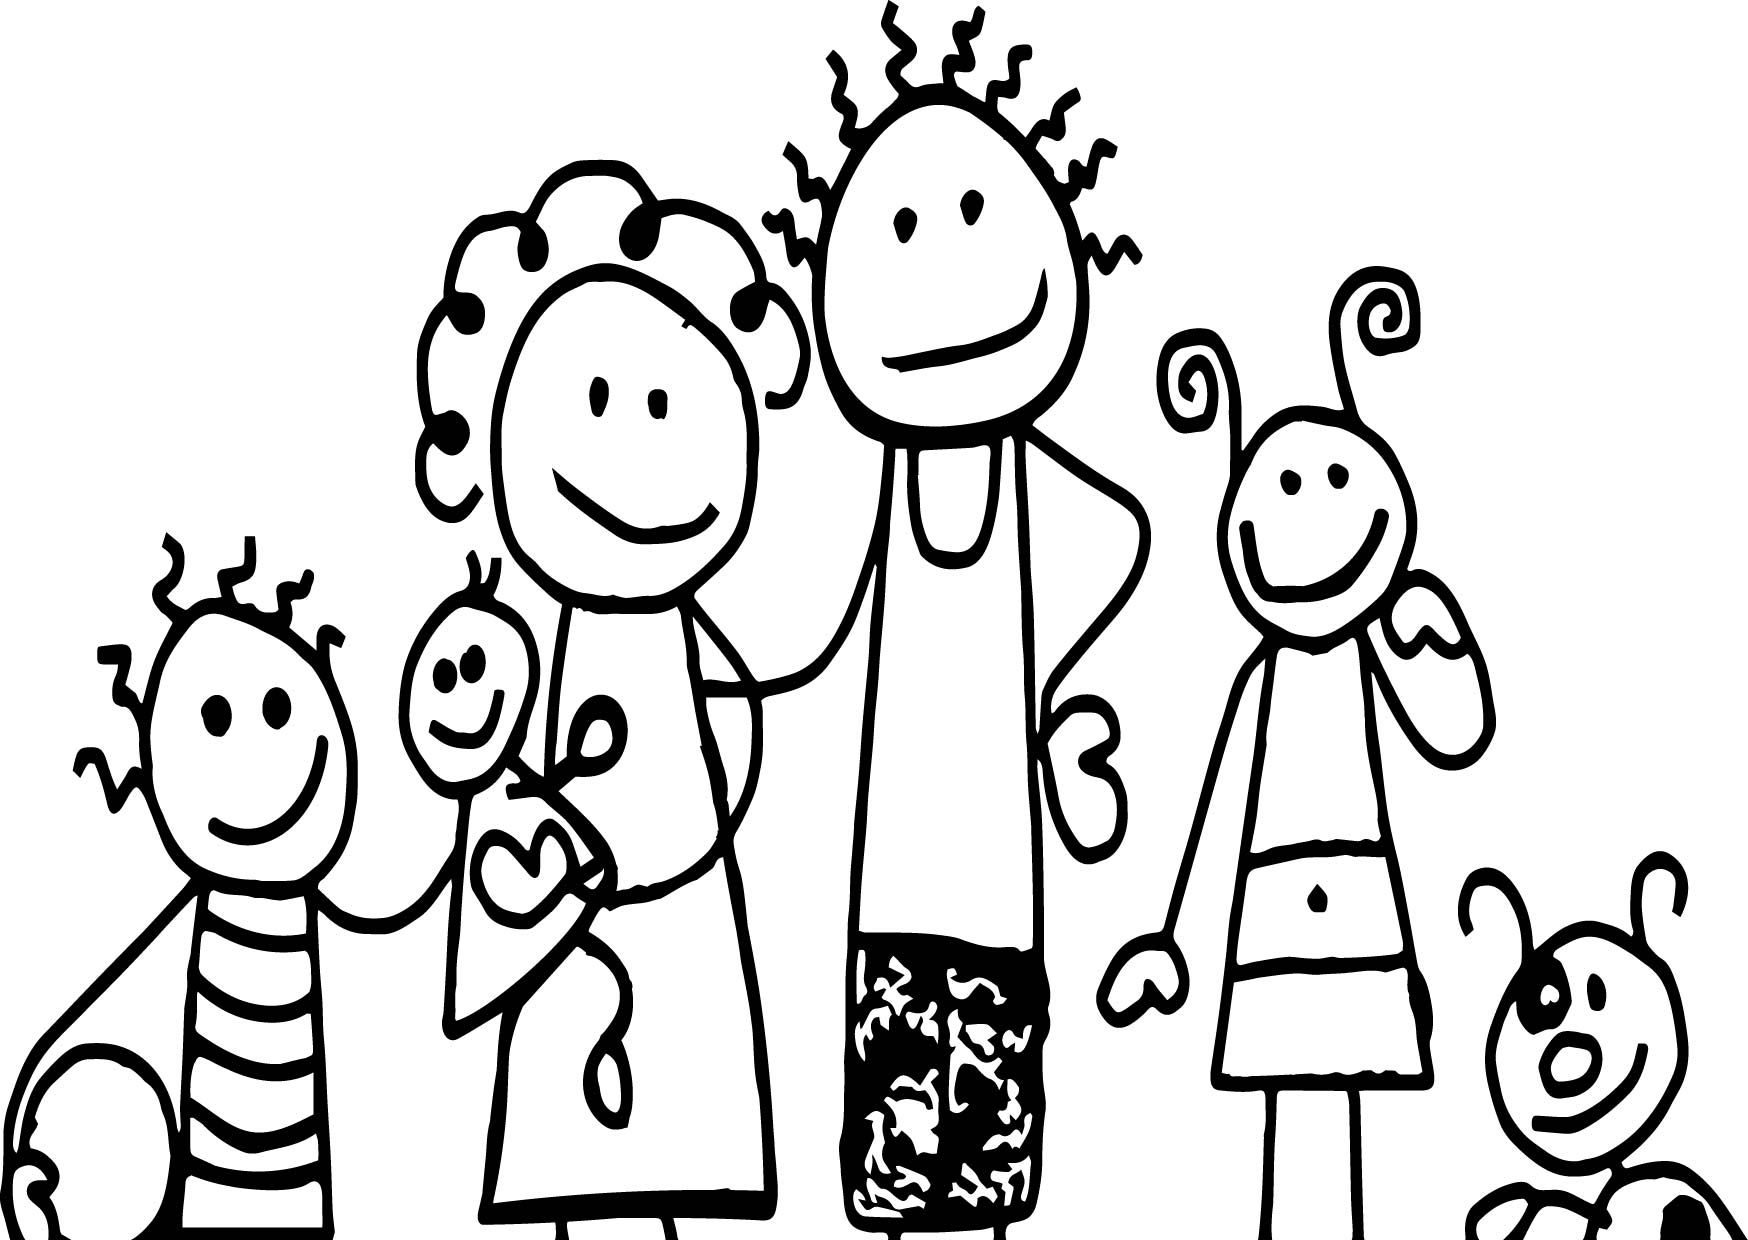 cartoon family coloring pages family clipart black and white iammrfostercom coloring family cartoon pages